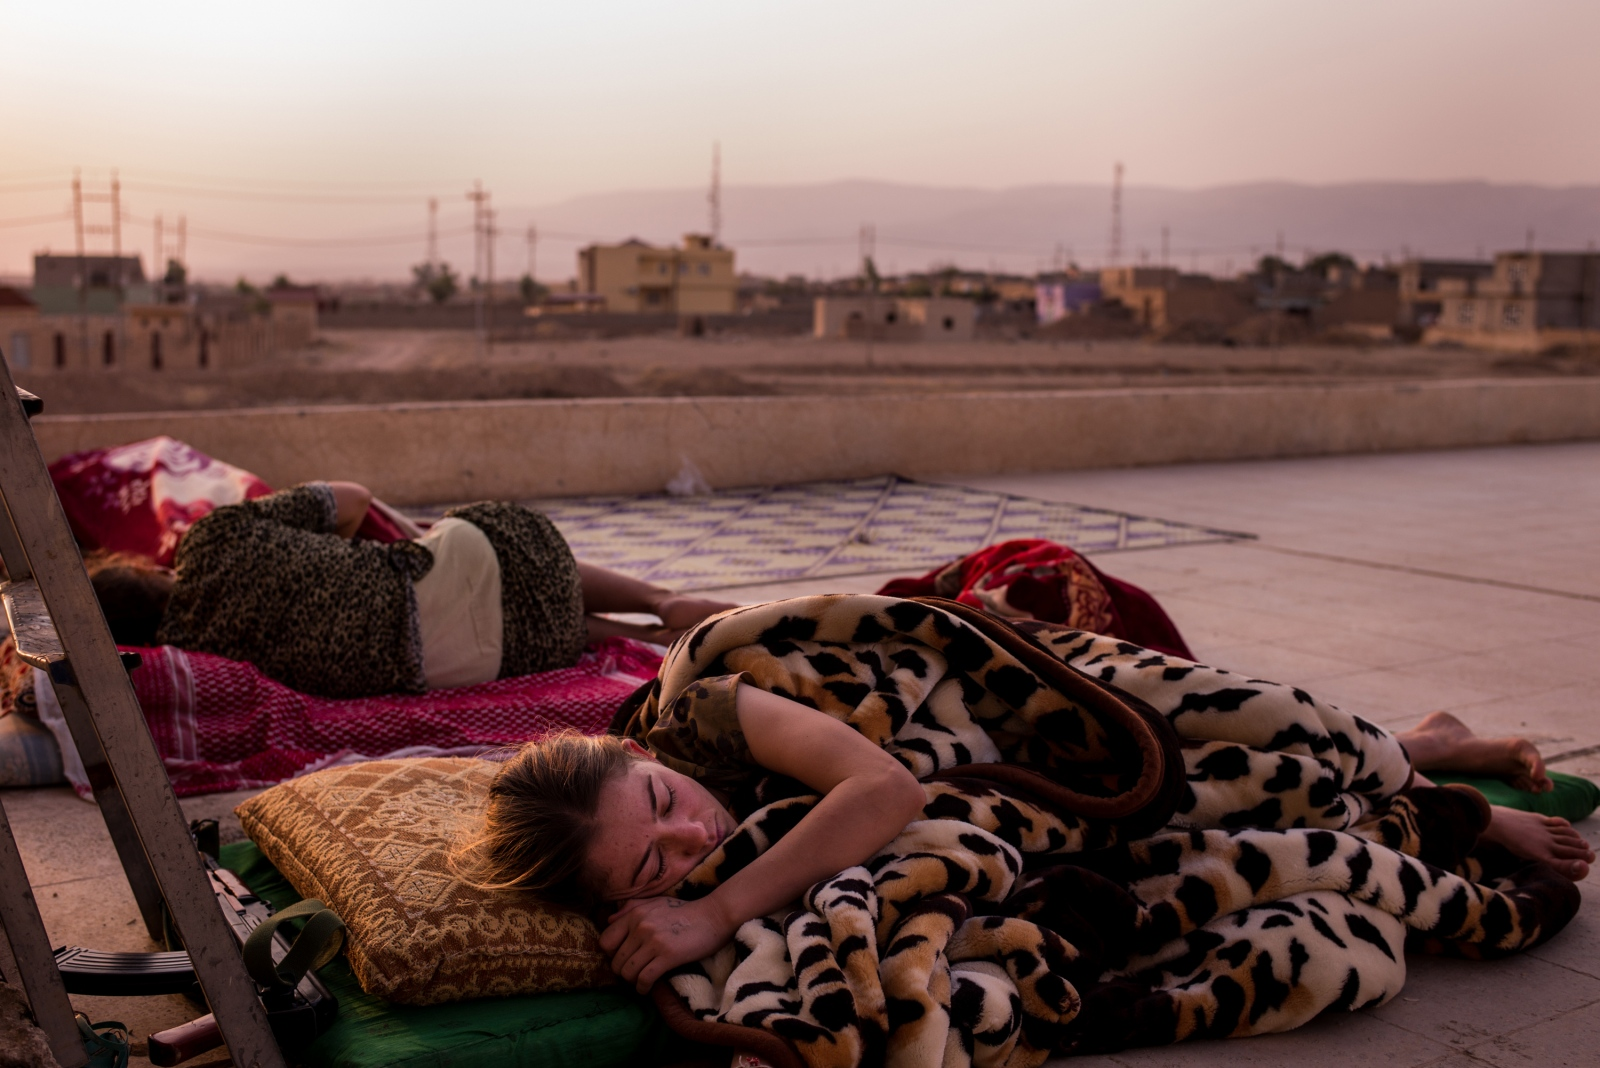 Lina, a soldier with the Yazidi 'Sun Ladies' battalion, sleeps just before dawn at their base near Sinjar, in Kurdistan, Iraq, on Tuesday, August 30, 2016. The 'Sun Ladies', made up of several hundred Yazidi women, some who were formerly enslaved by ISIS, are attempting to fight back against the extremist group with the help of the Kurdish Peshmerga through training, funds, and arms.